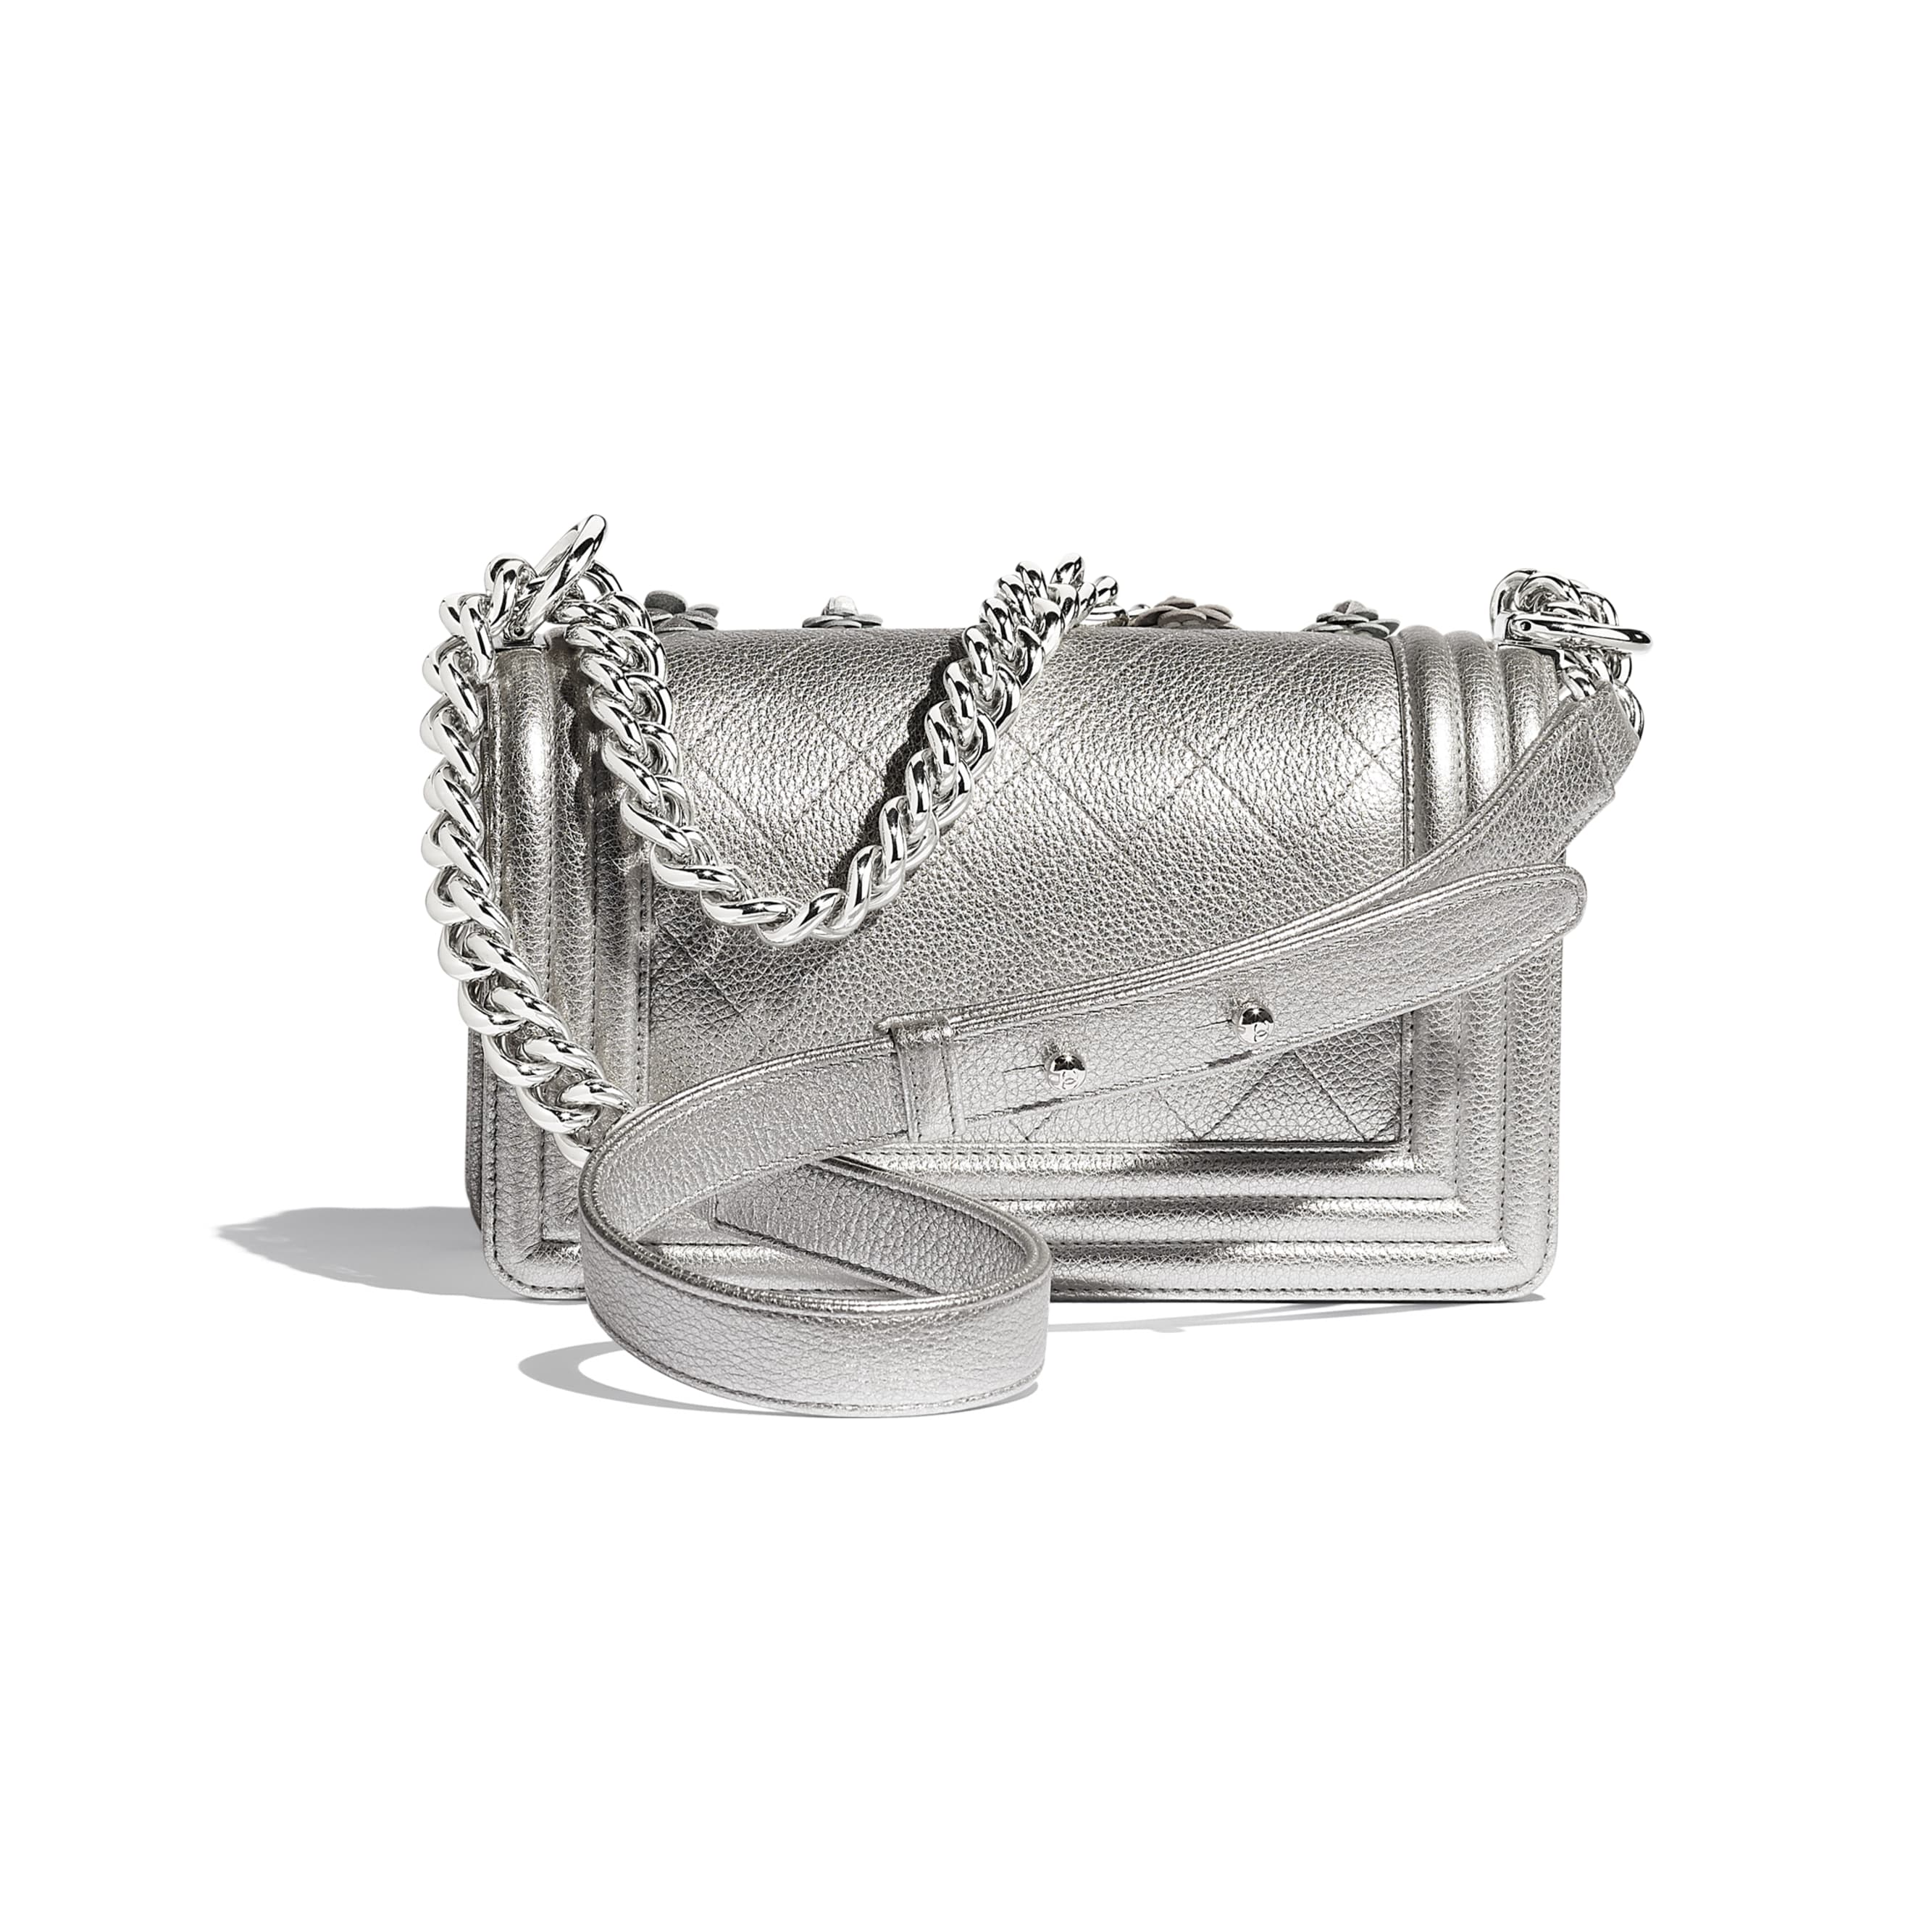 Small BOY CHANEL Handbag - Silver - Embroidered Metallic Grained Calfskin & Silver-Tone Metal - Alternative view - see standard sized version